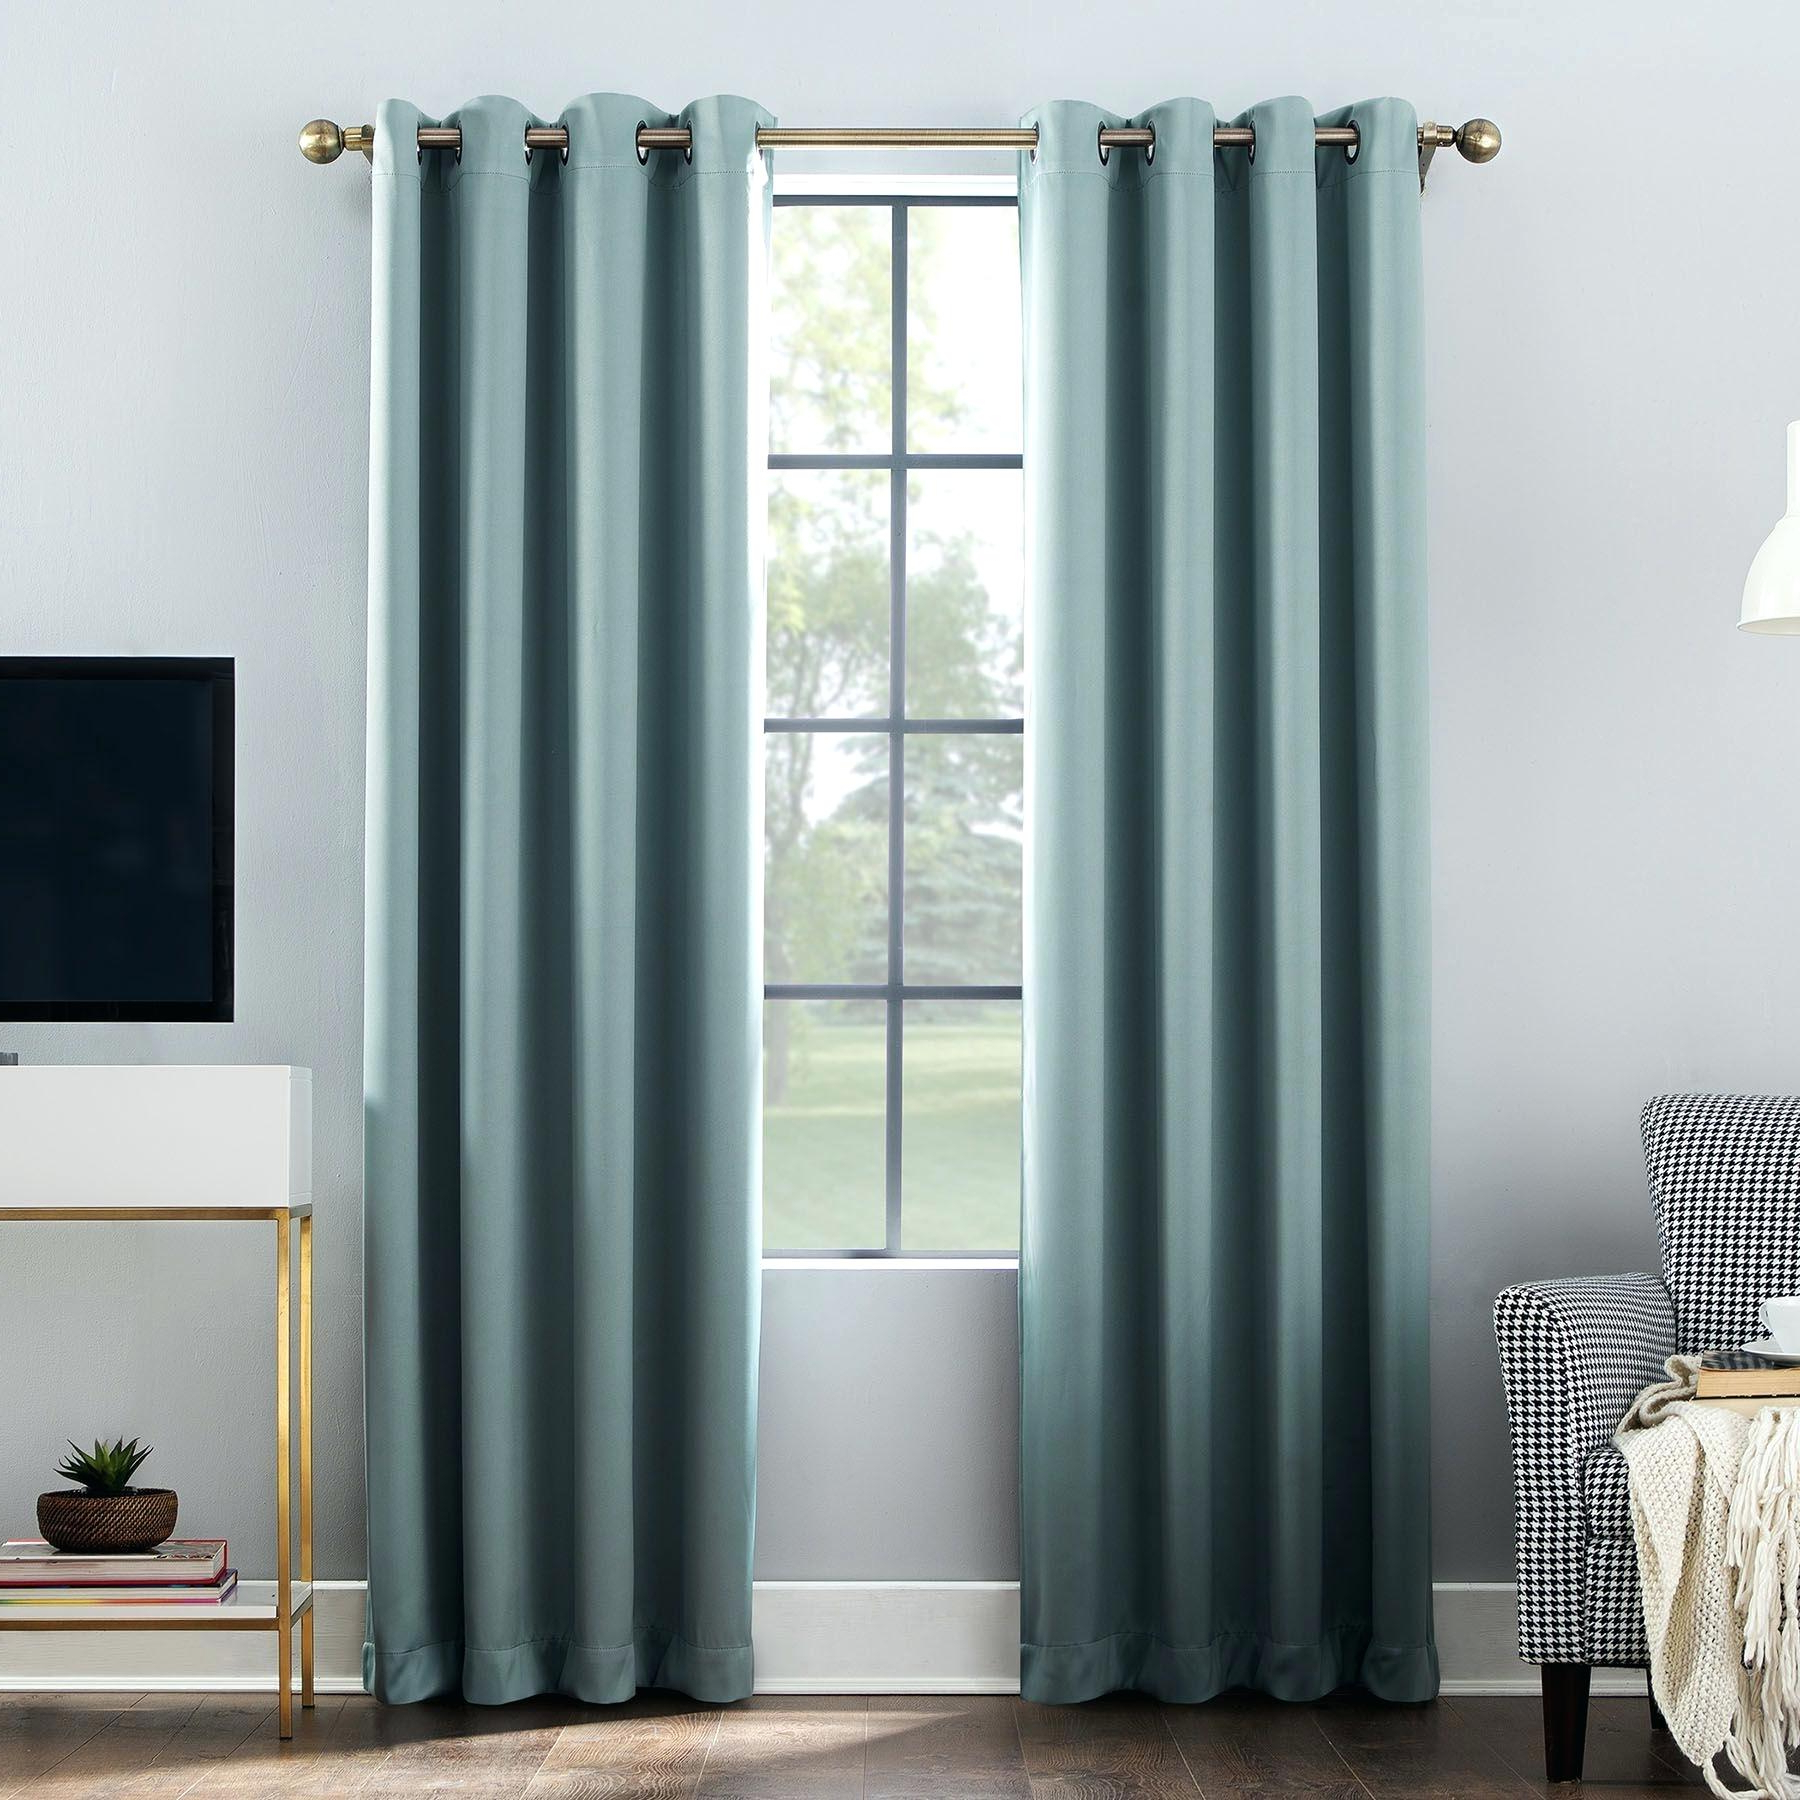 Marvellous Grommet Curtains Outdoor On Sale Blackout Diy Inside Well Known Ultimate Blackout Short Length Grommet Panels (View 15 of 20)